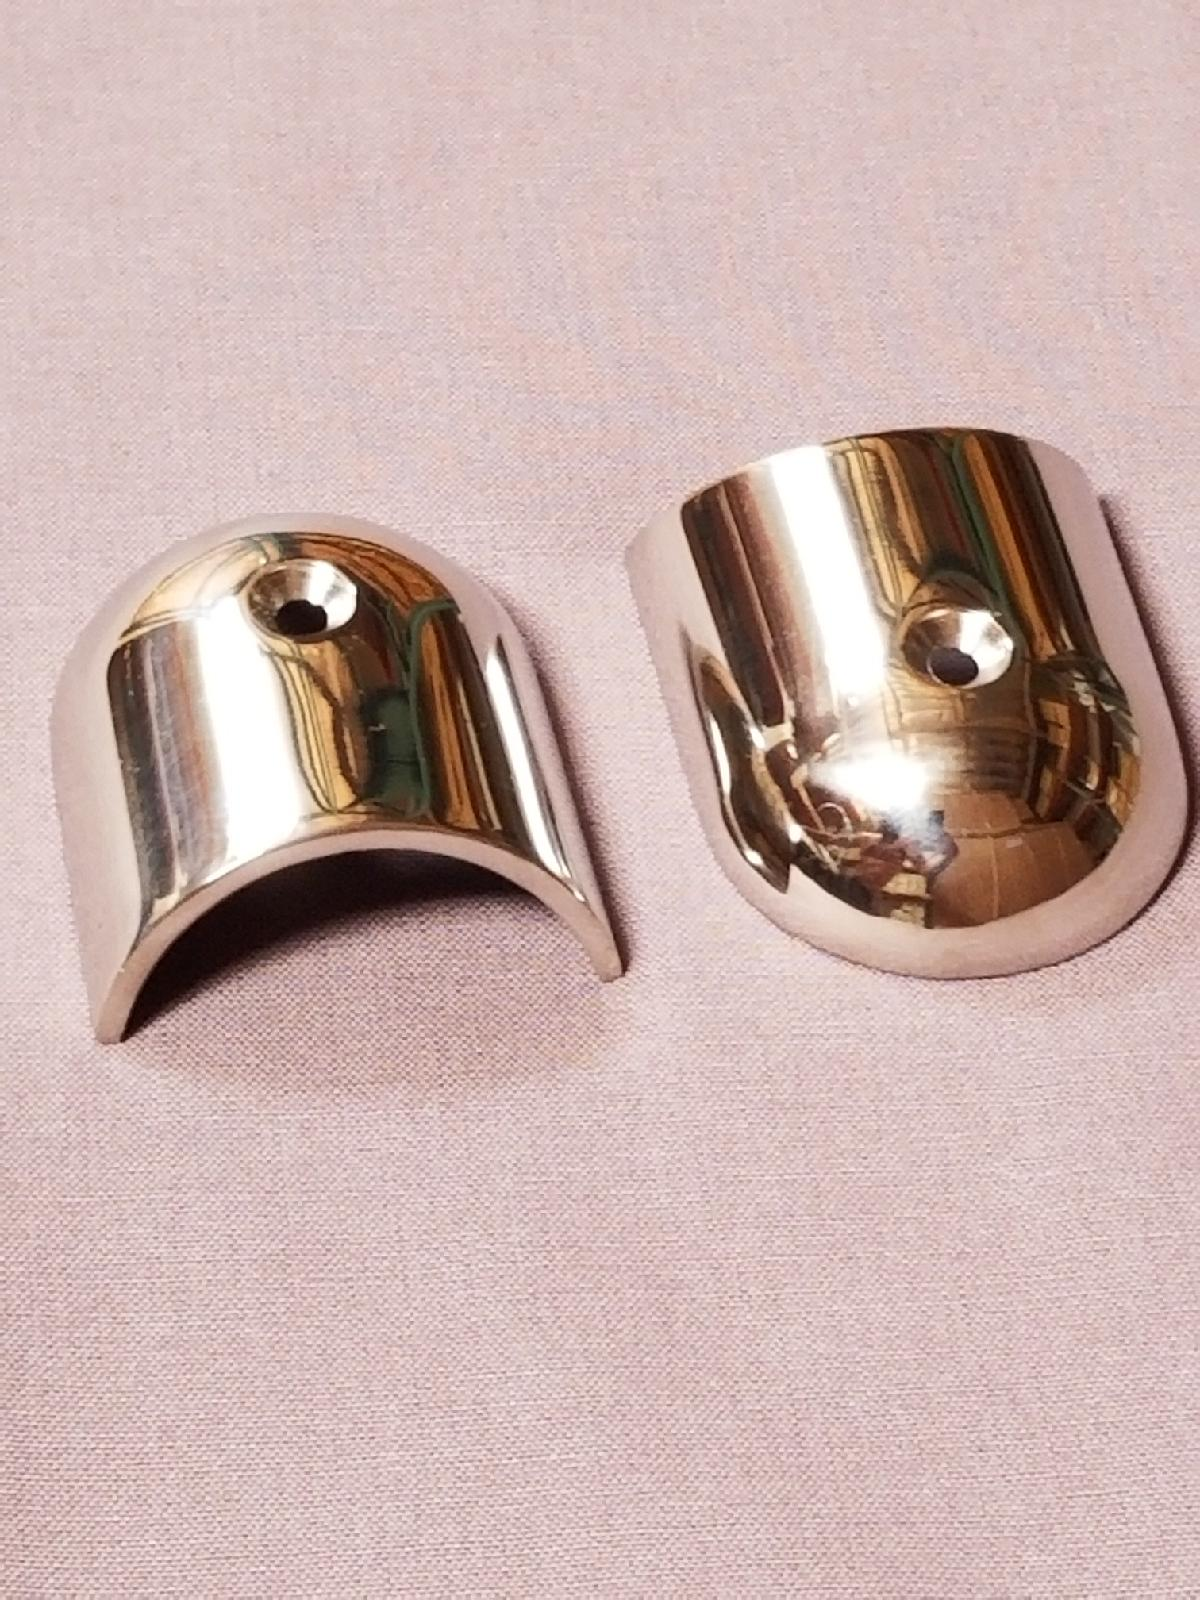 BOSTON WHALER 316 STAINLESS RUBRAIL END CAPS (PAIR) - CLASSIC 9'-17' HULL